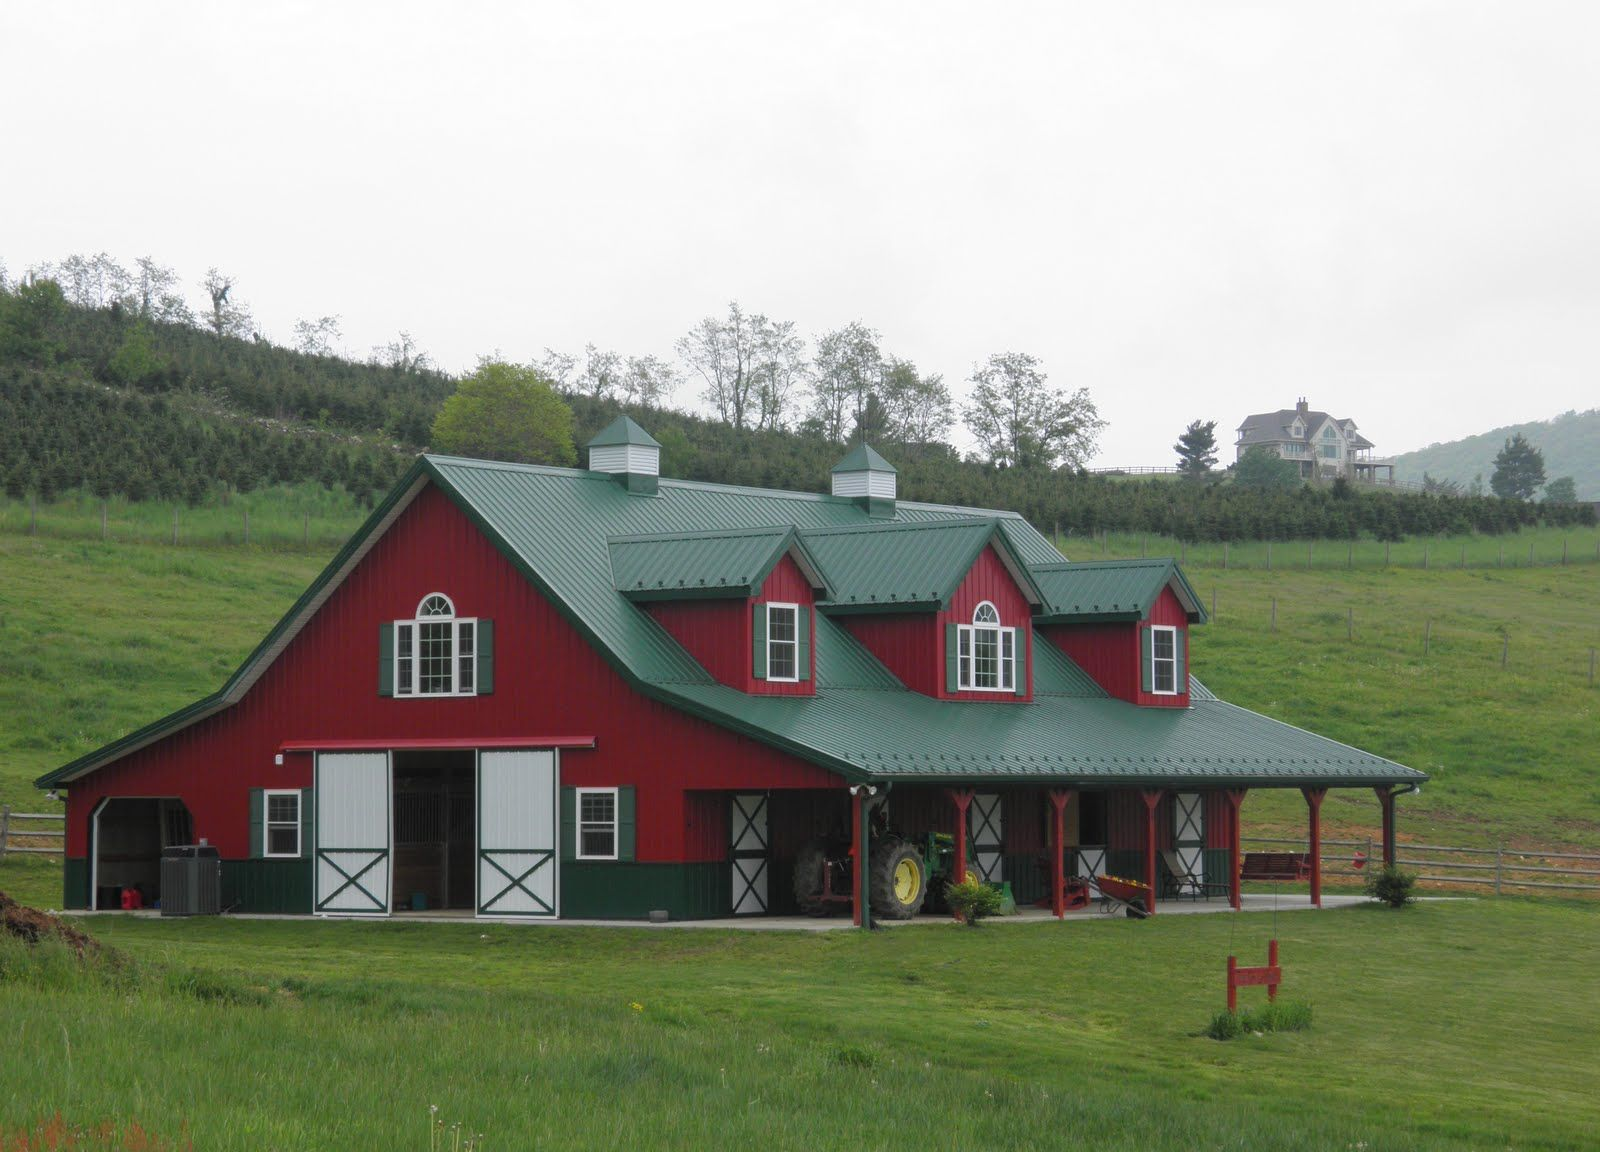 House that looks like red barn images at home in the for Barn style home designs